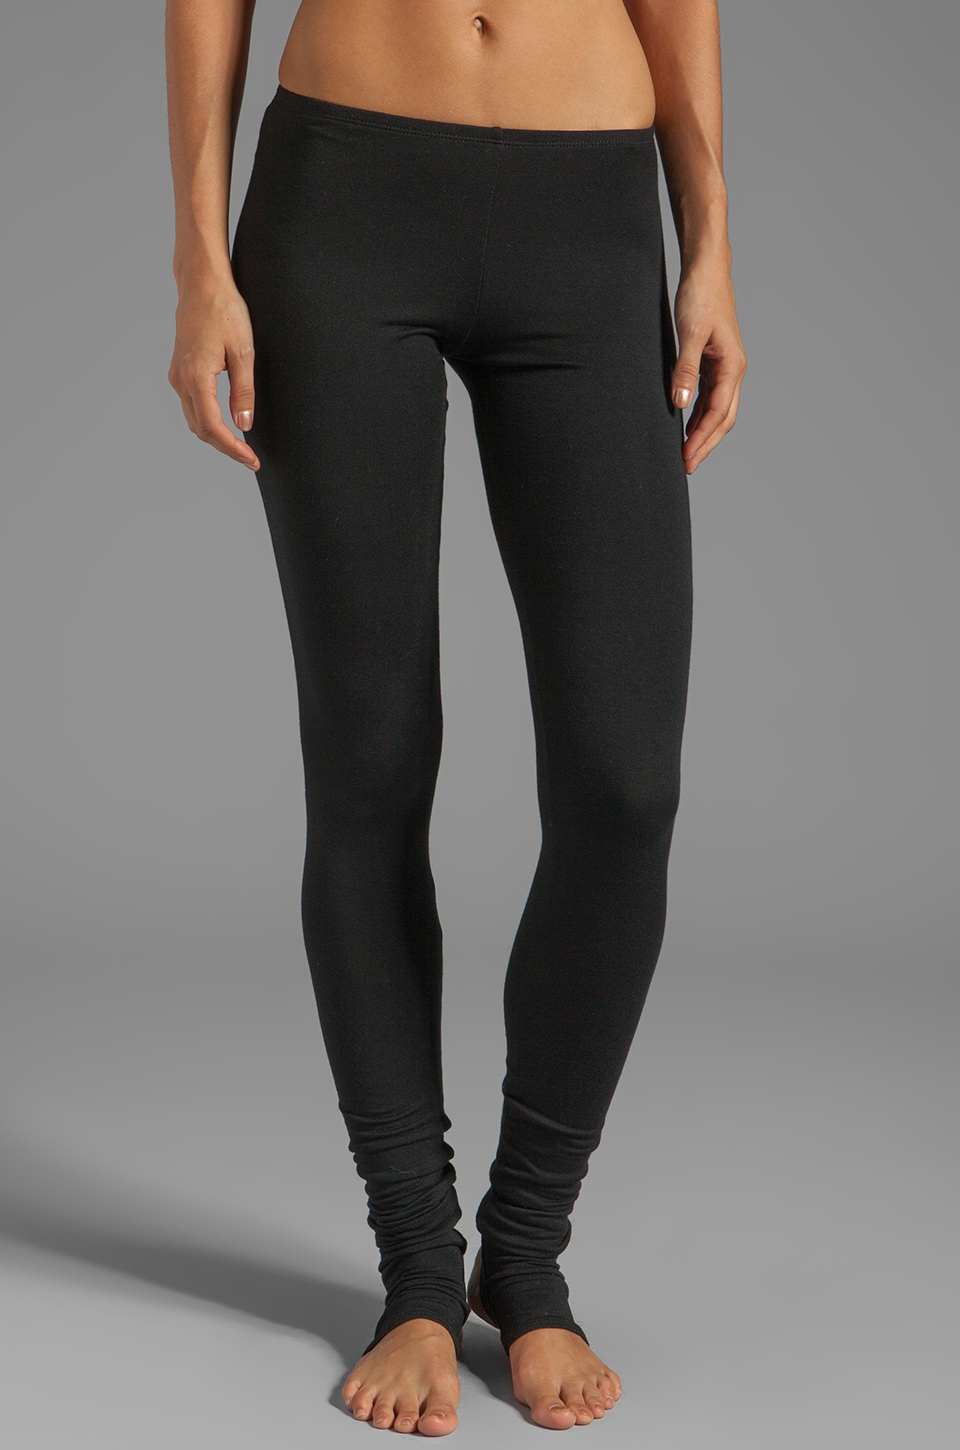 Riller & Fount Cole Stirrup Legging in Black